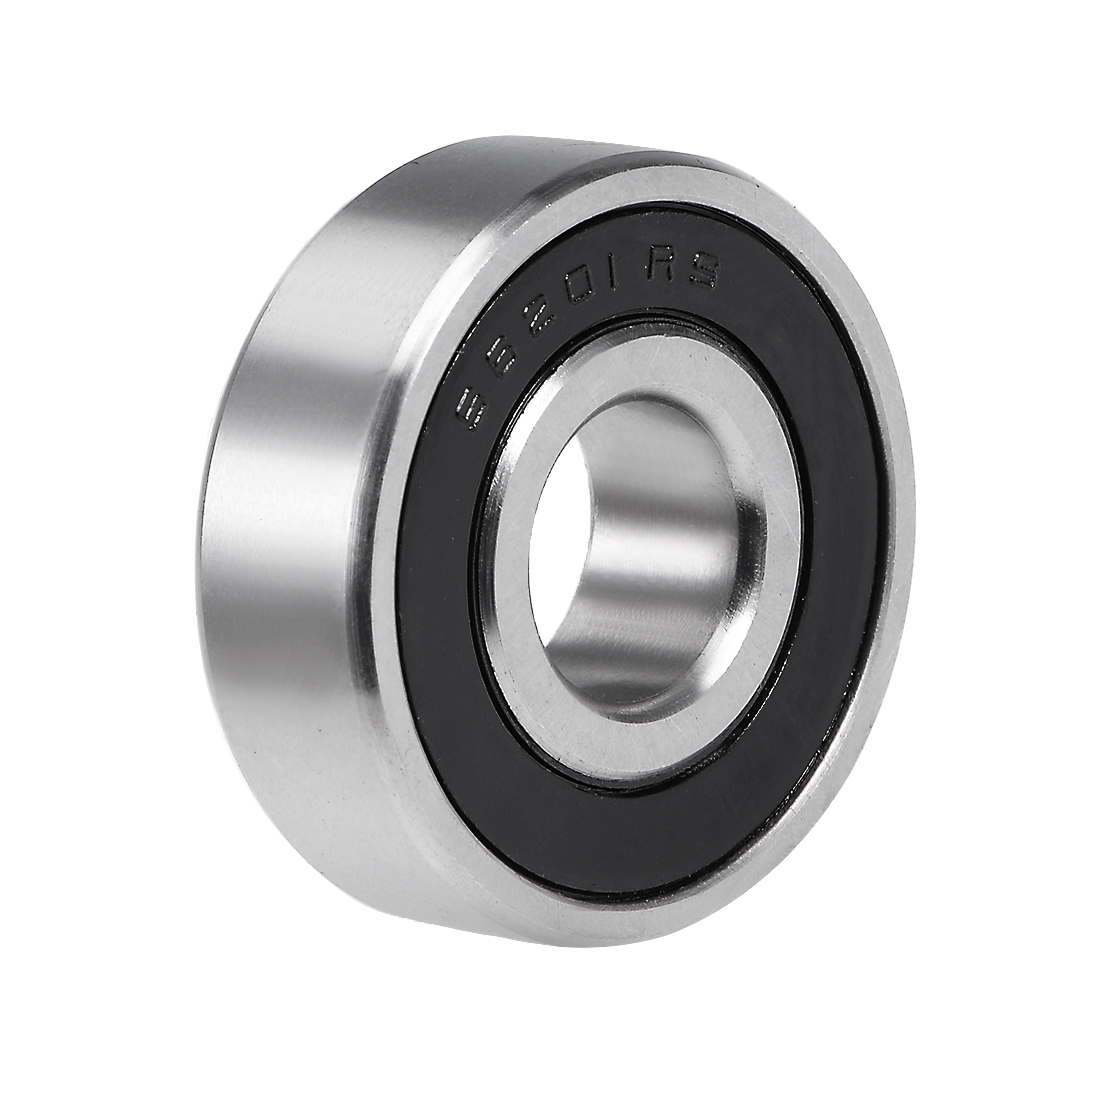 S6201-2RS Stainless Steel Ball Bearing 12x32x10mm Double Sealed 6201RS Bearings